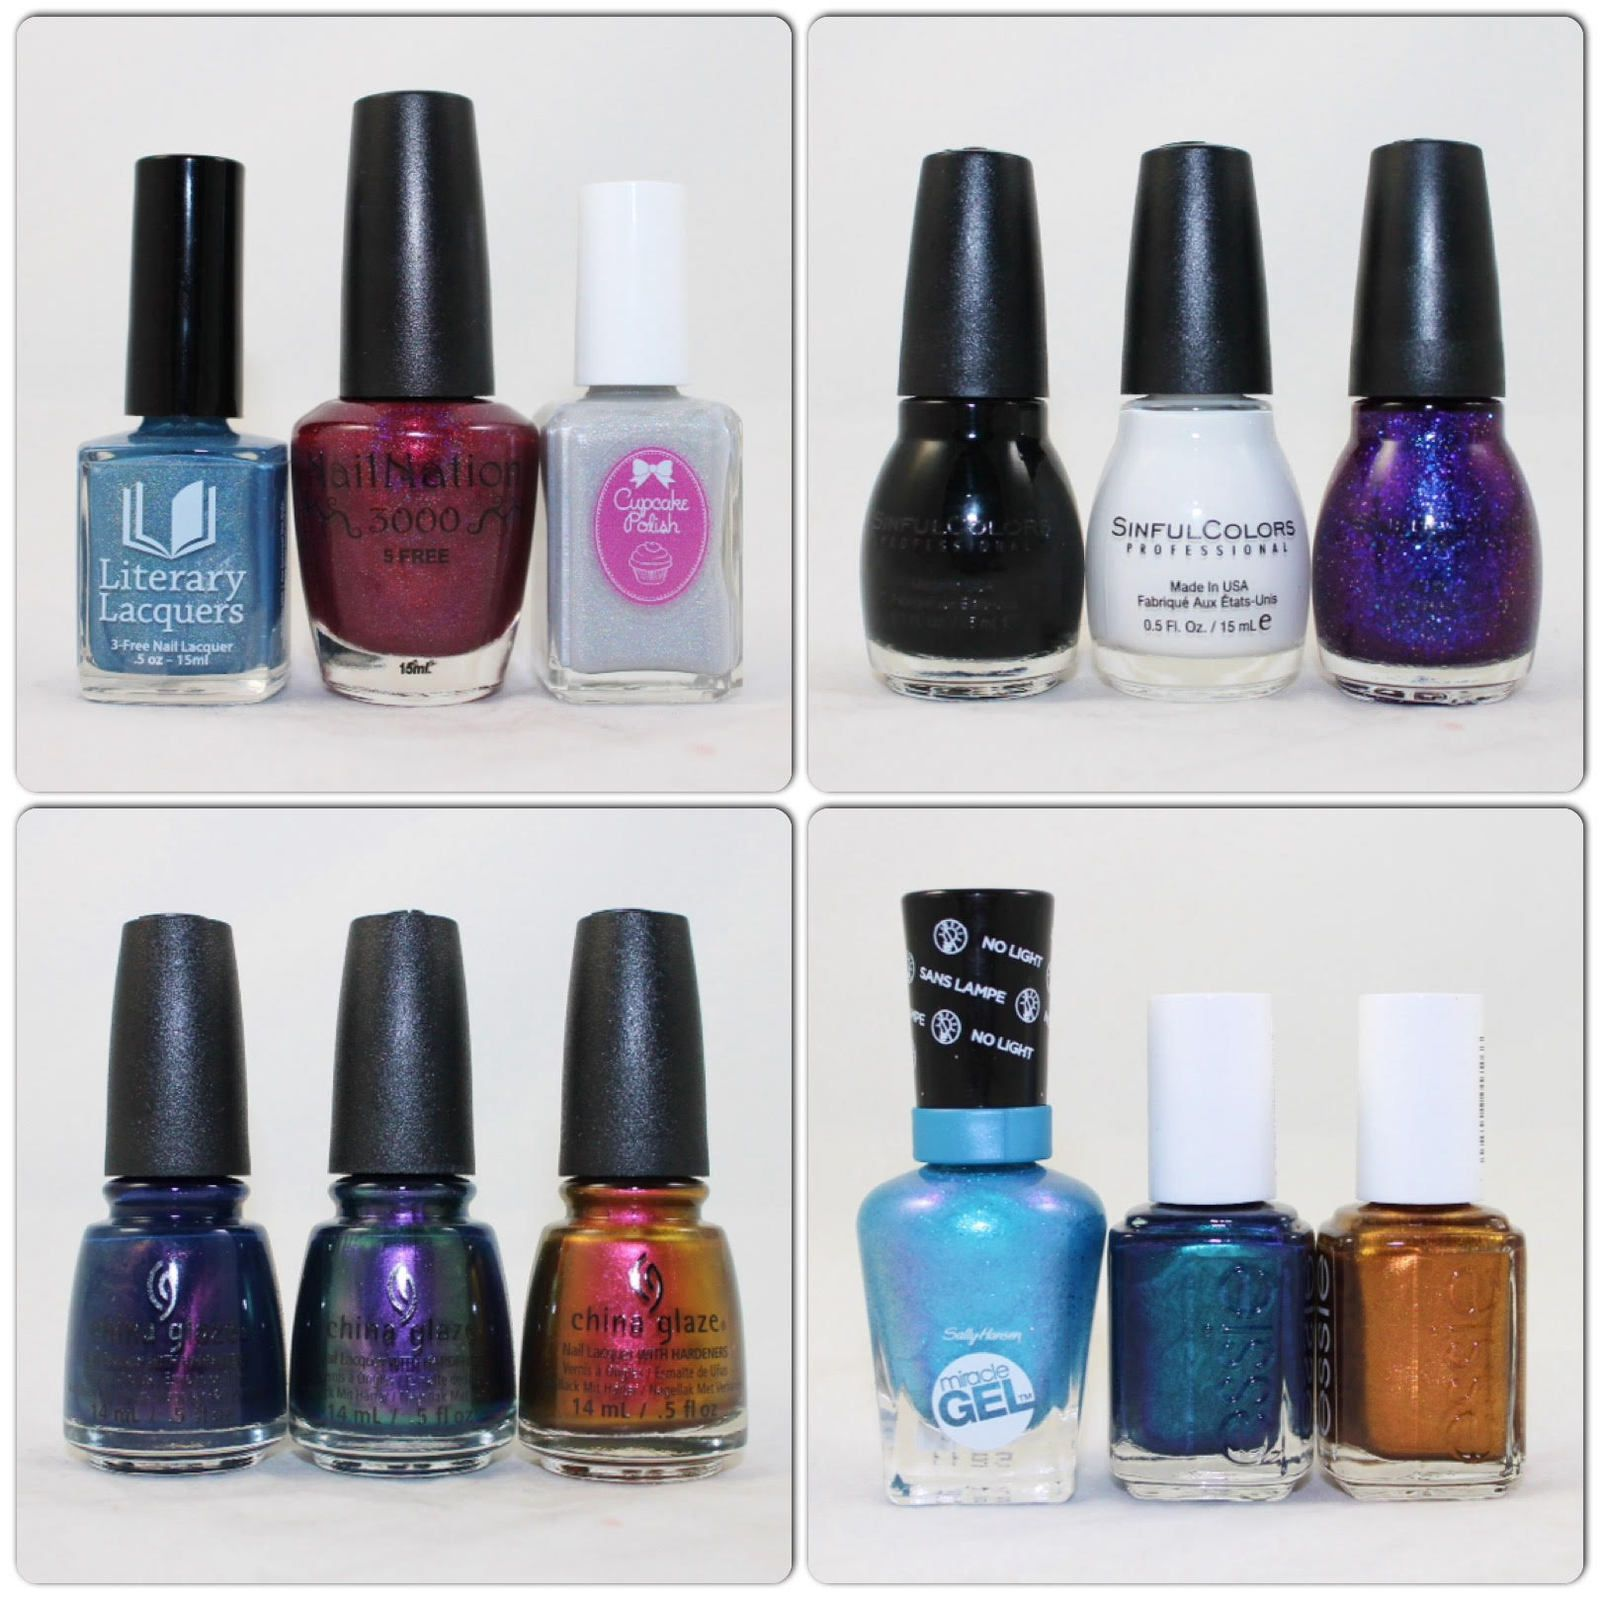 The Holo Grail Box by Dazzled - July 2015 - Favorite TV Shows. Sinful Colors Black on Black, Snow Me White, Interstellar. China Glaze Pondering, Sleeping Under the Stars, Cabin Fever. Sally Hansen Flash-ionista. Essie Bell-Bottom Blues & Leggy Legend.